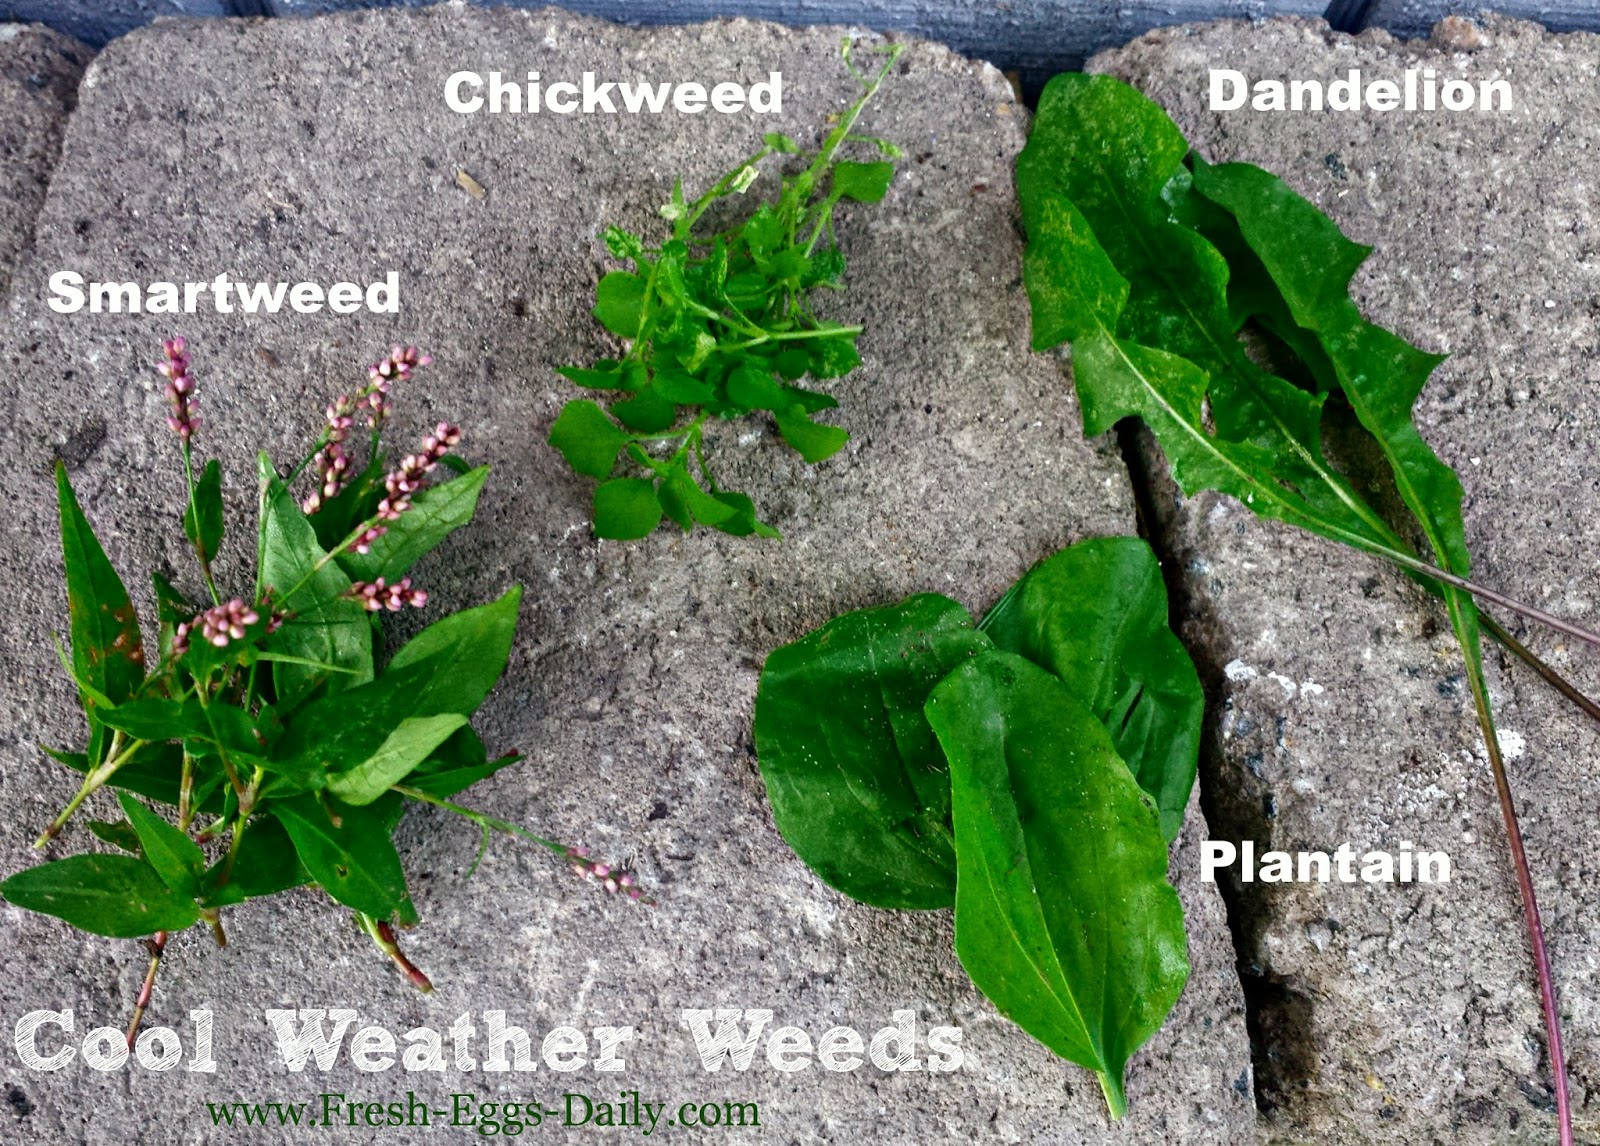 weeds 101 a nutritious free treat for your backyard chickens